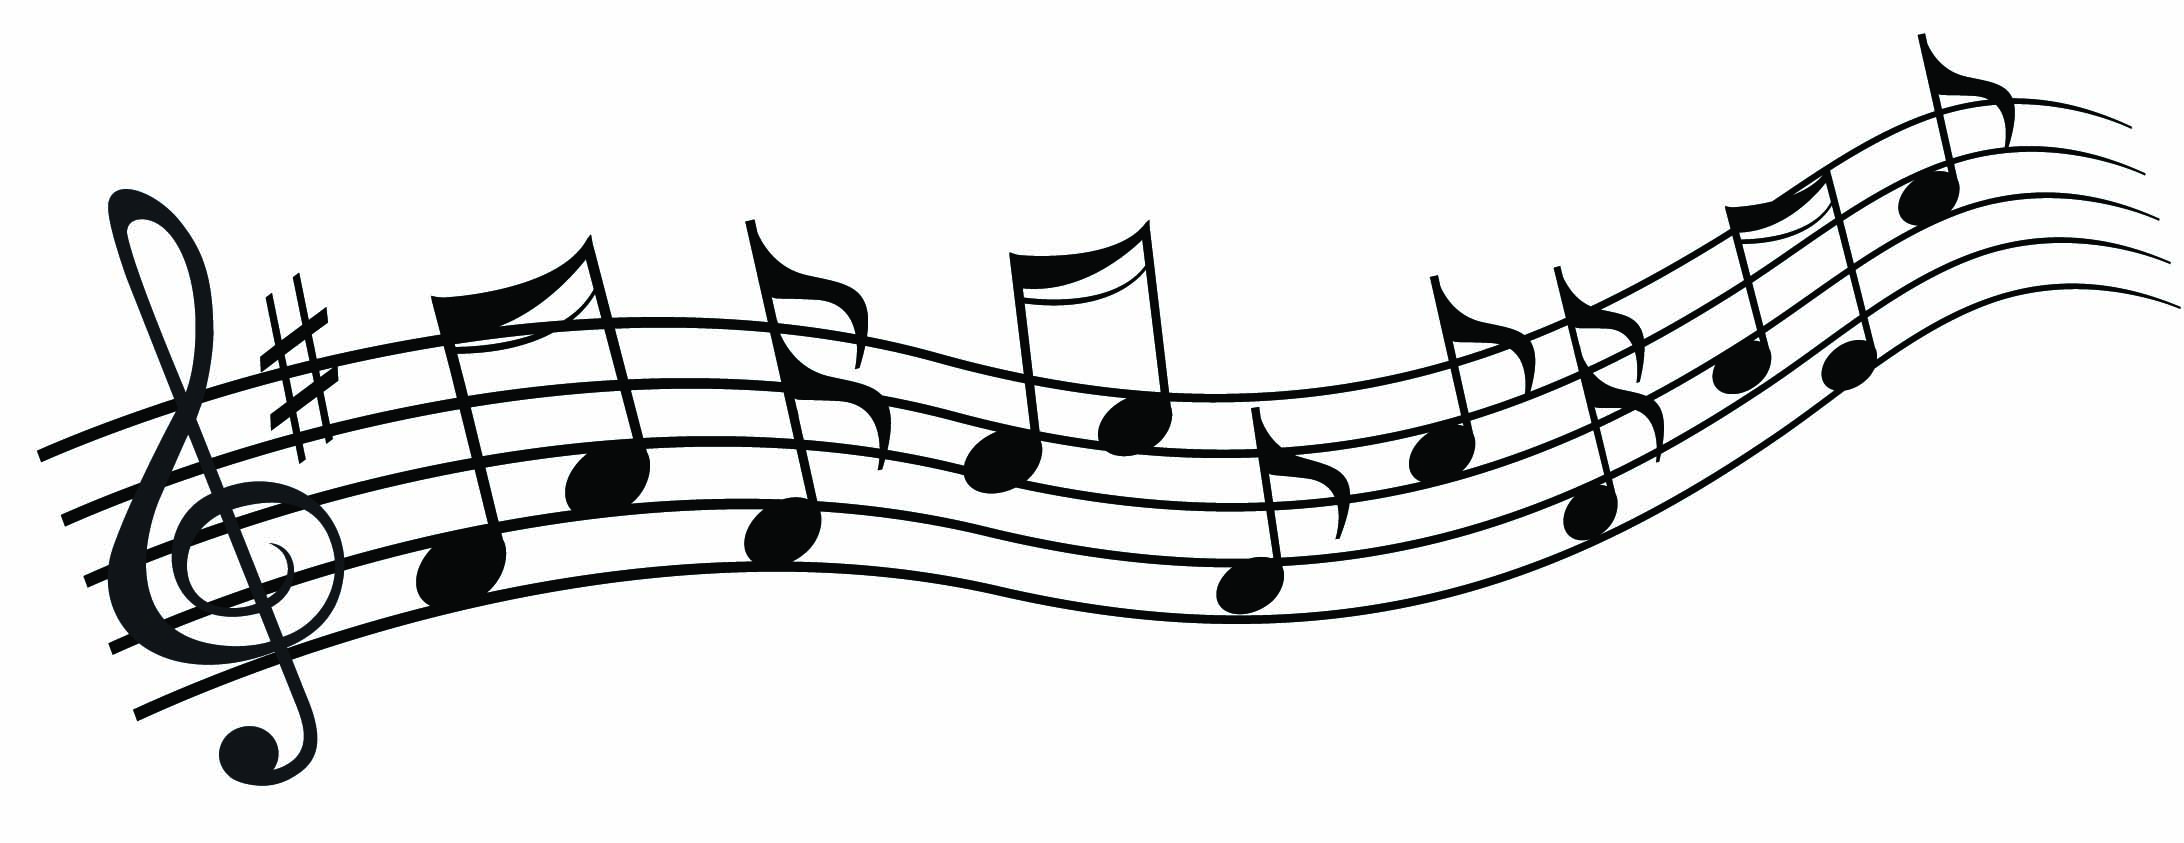 Free music clip art images 2-Free music clip art images 2-2